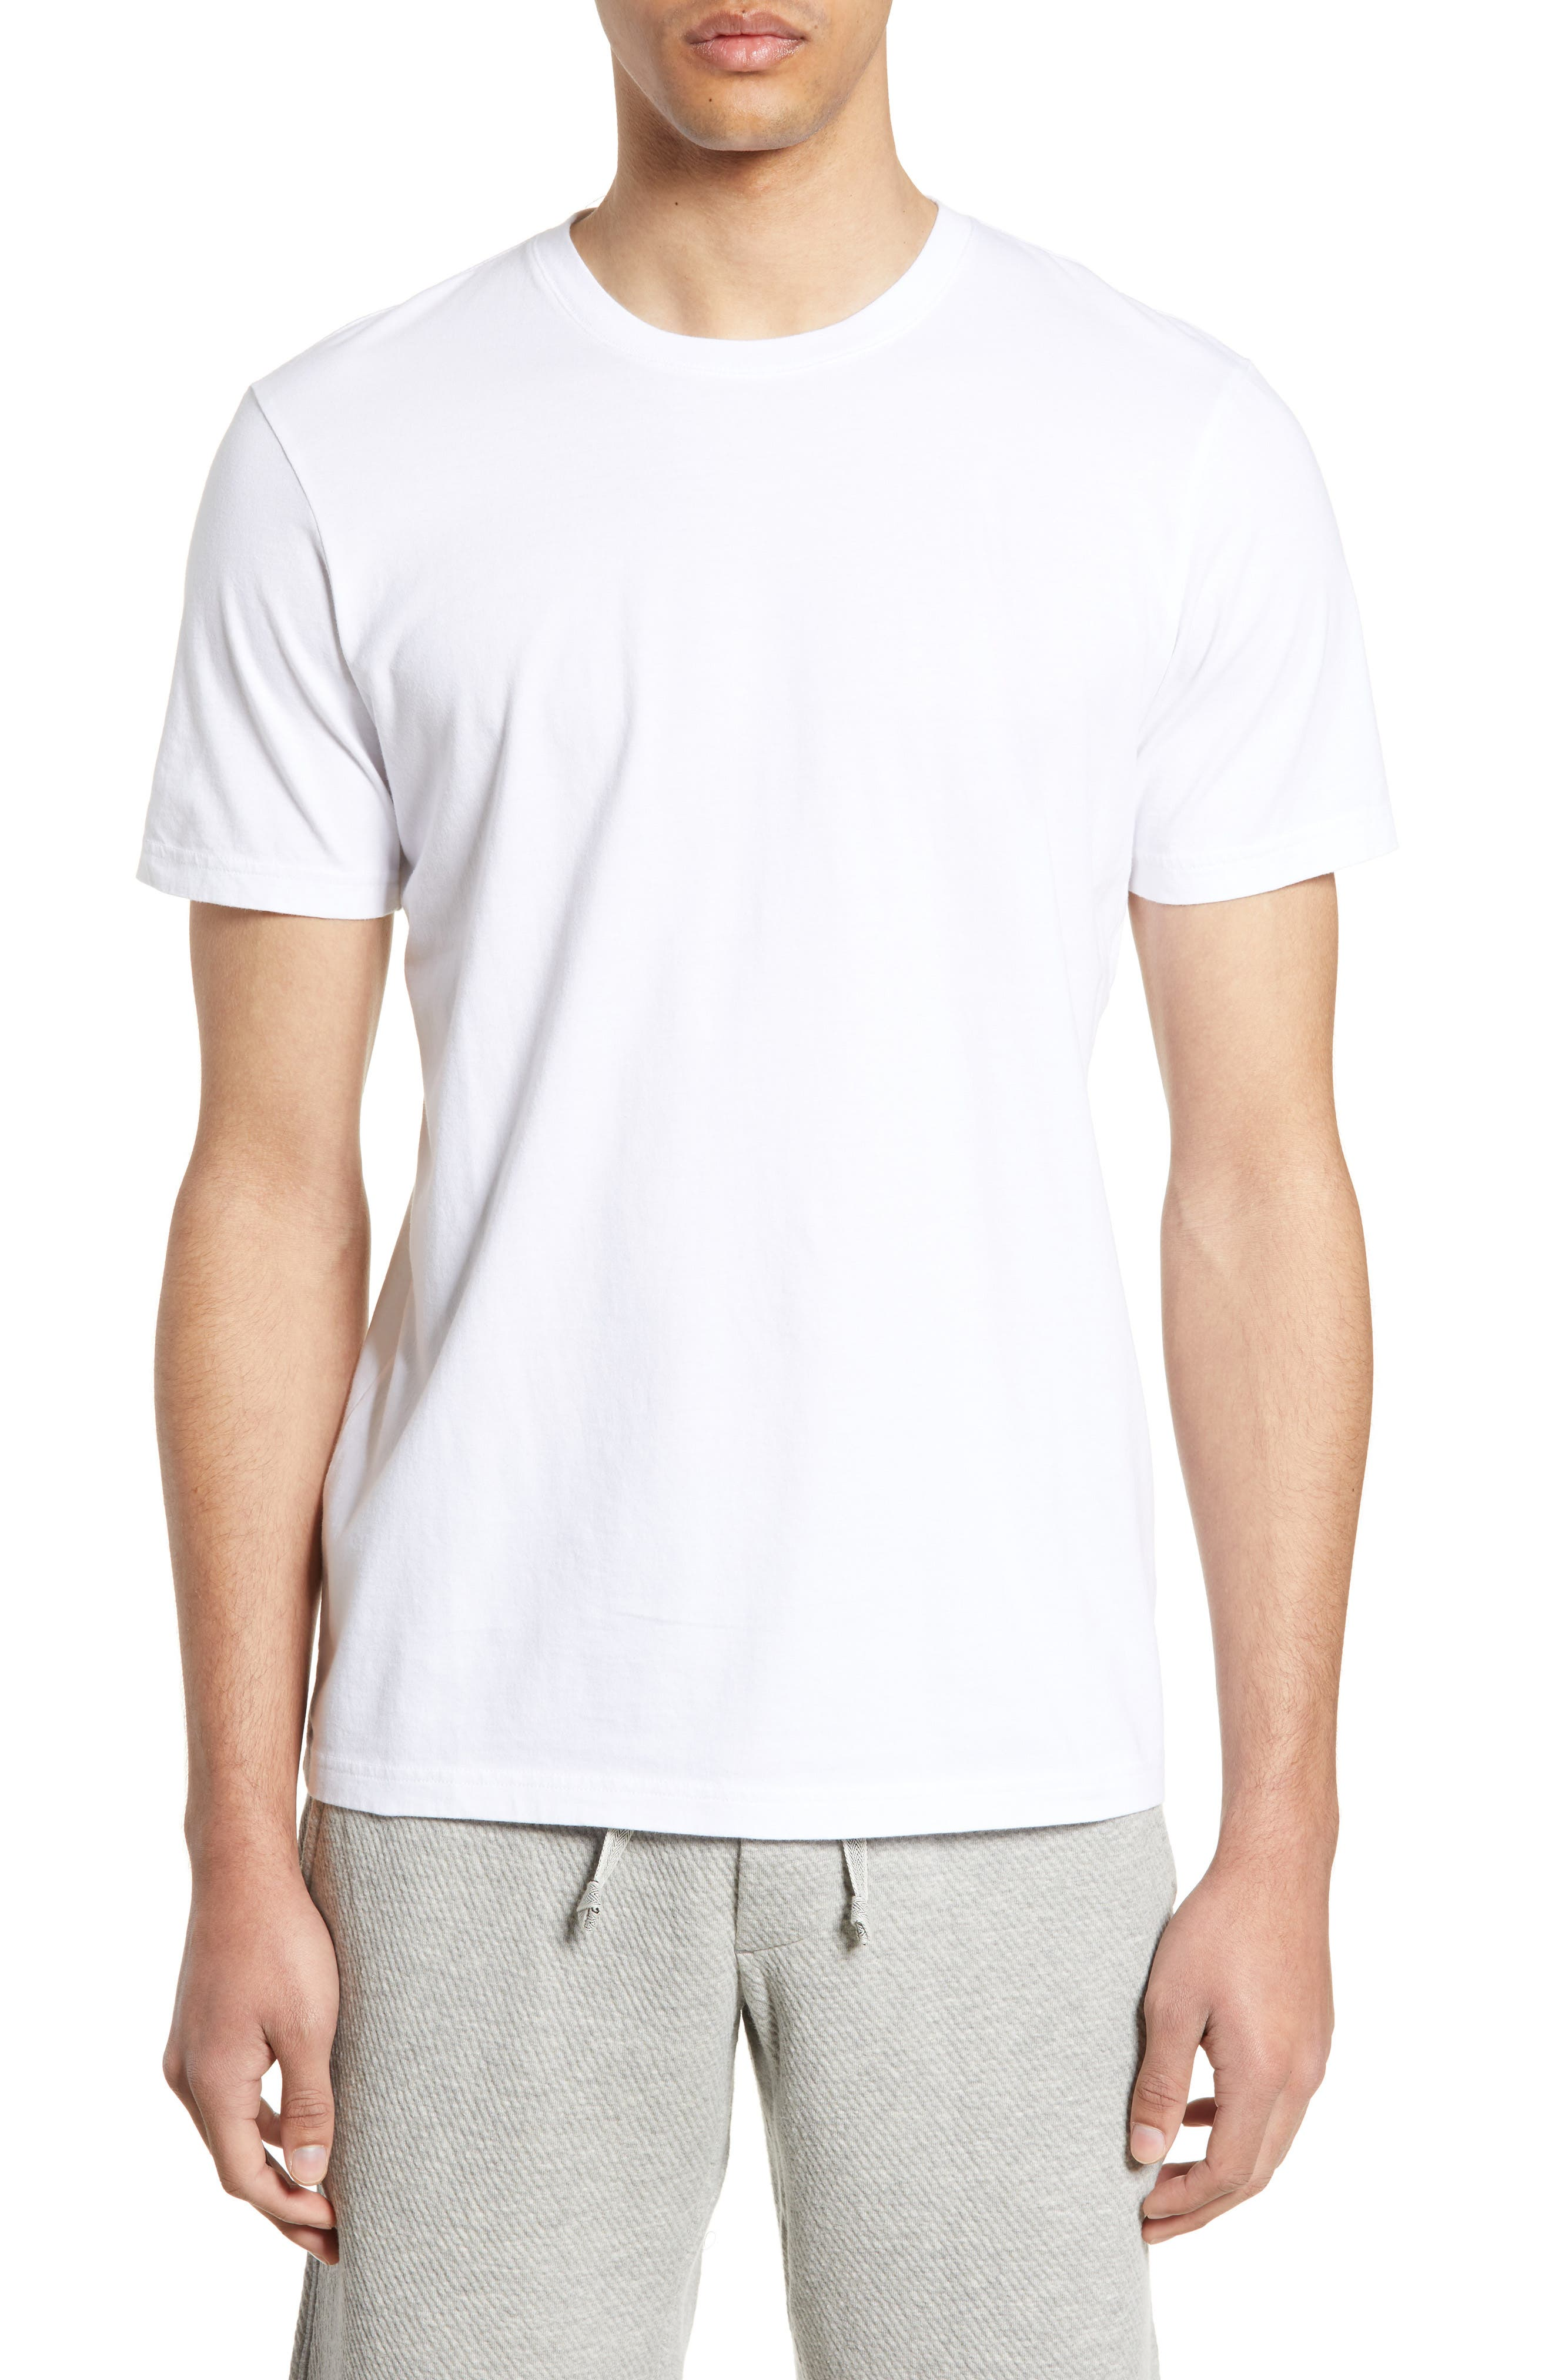 WINGS + HORNS Short Sleeve Crewneck T-Shirt, Main, color, WHITE